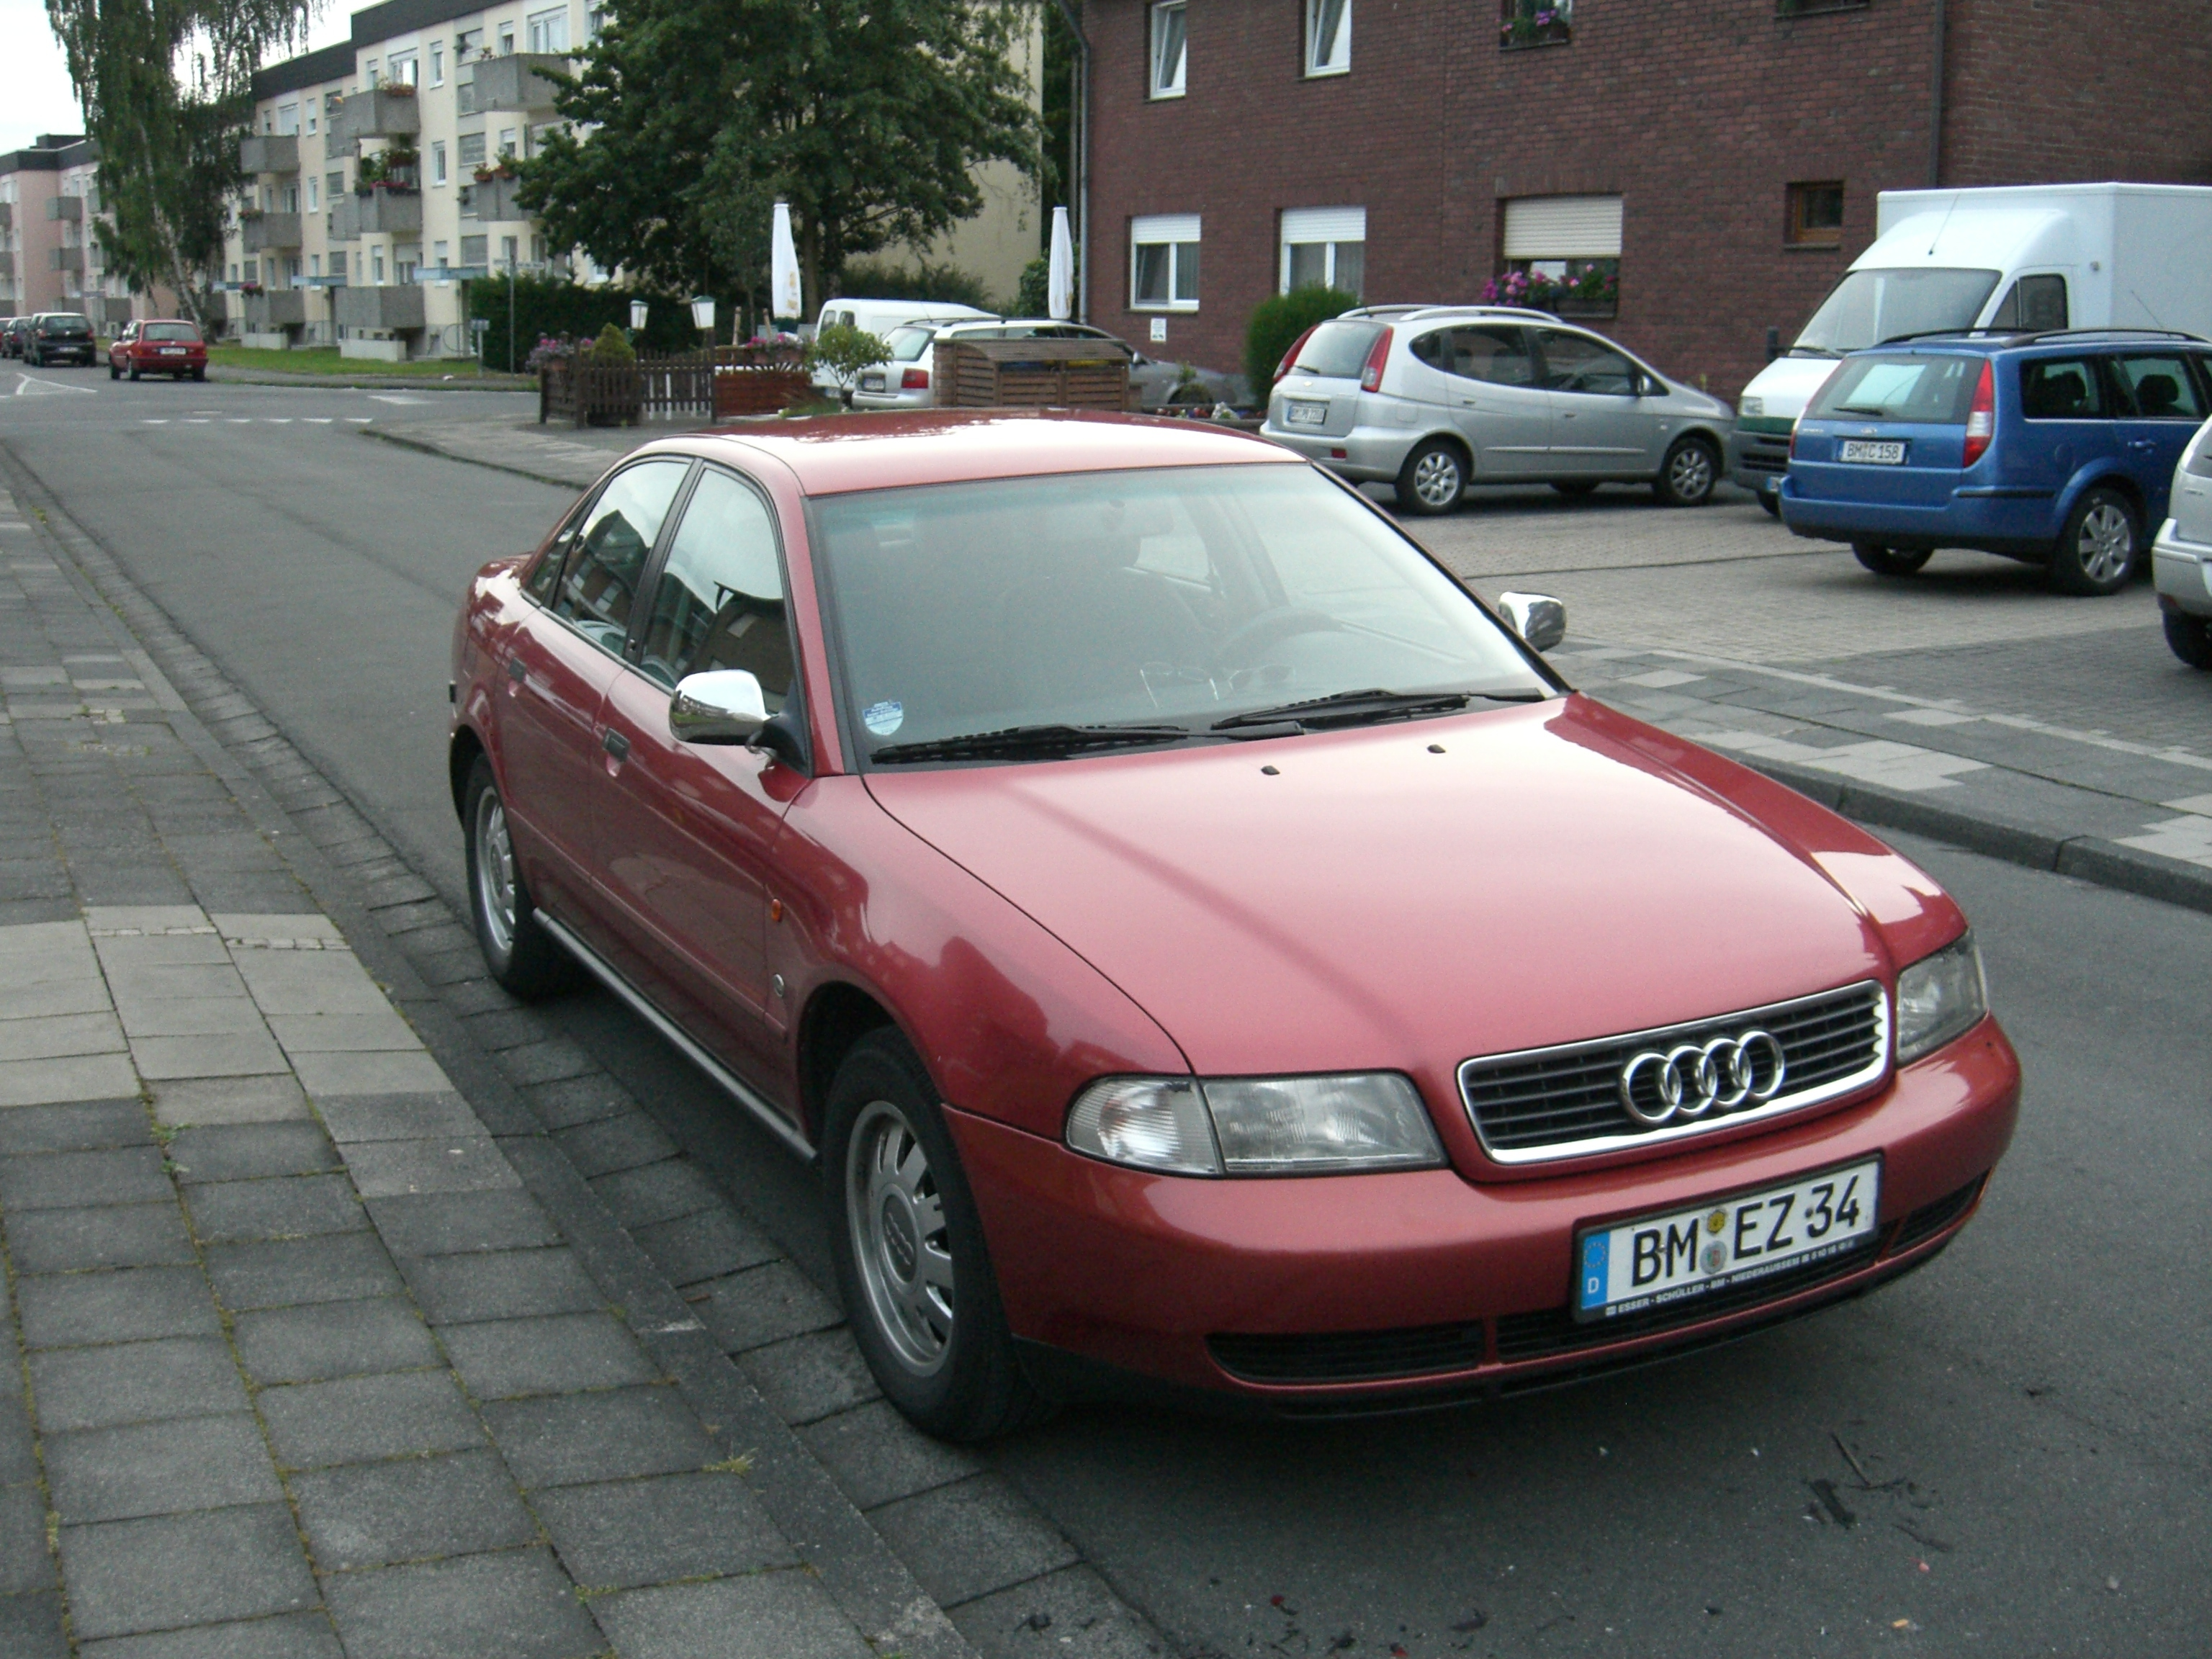 a3-tuning's 1995 Audi A4